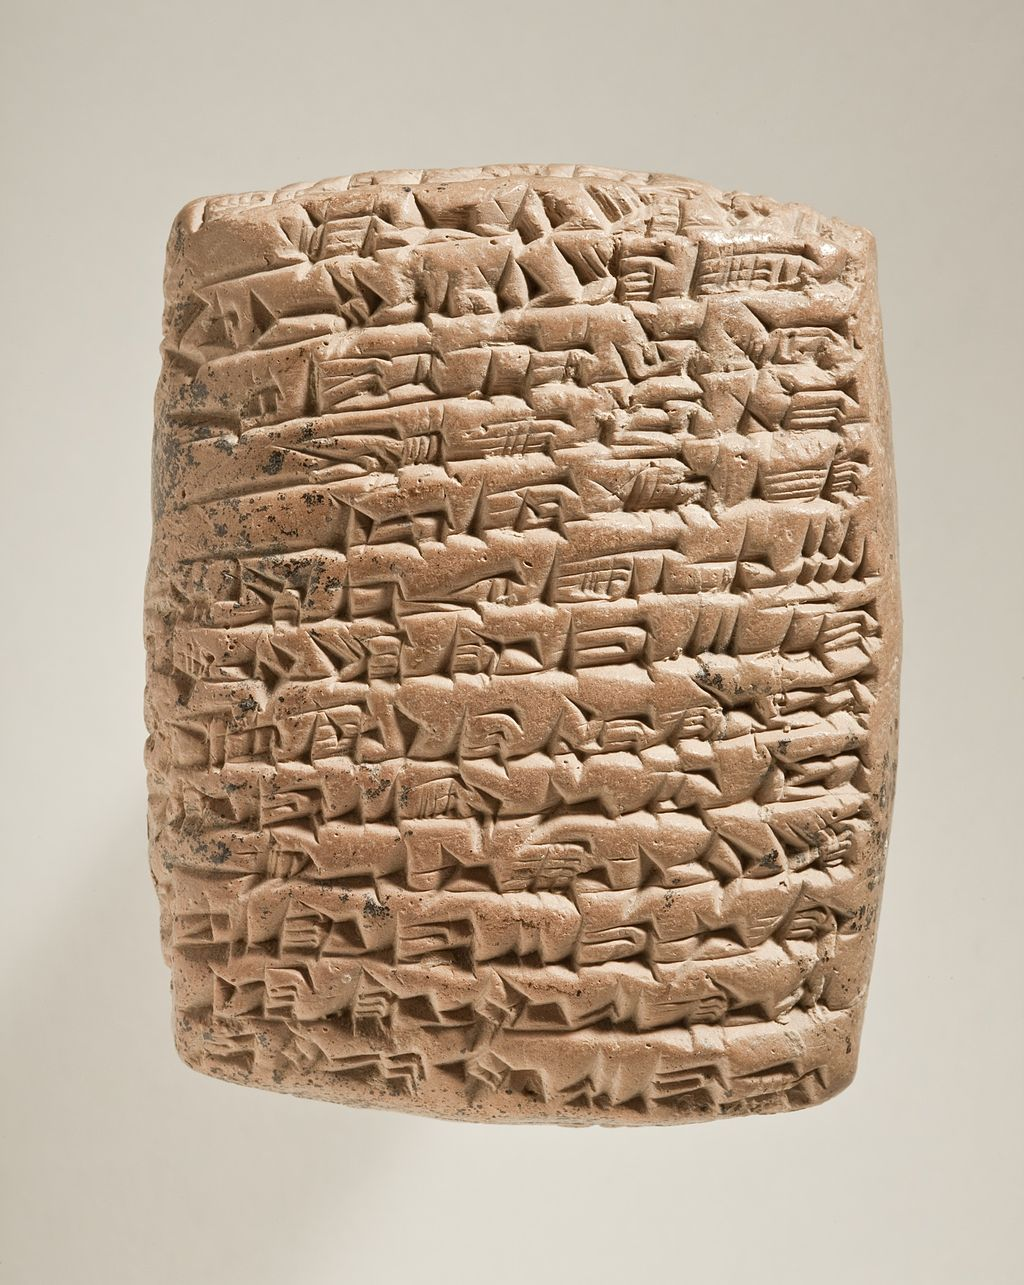 A cuneiform tablet that relays a lengthy story involving a scorpion, a frog, a woven basket, and a man who cannot distinguish oxen from fish.